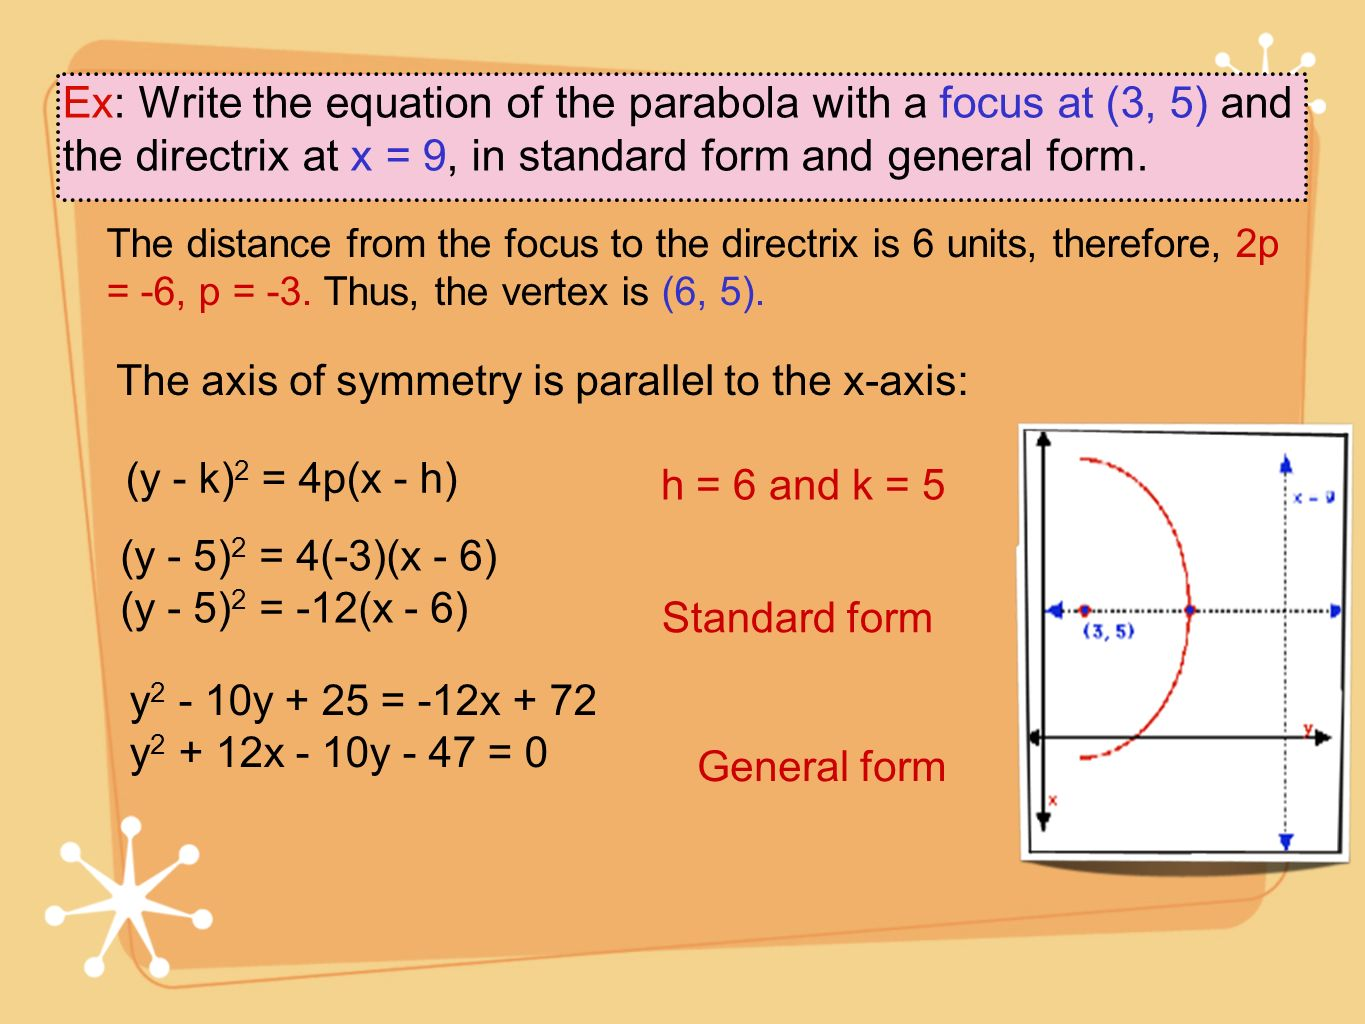 Ex: Write the equation of the parabola with a focus at (3, 5) and the directrix at x = 9, in standard form and general form.